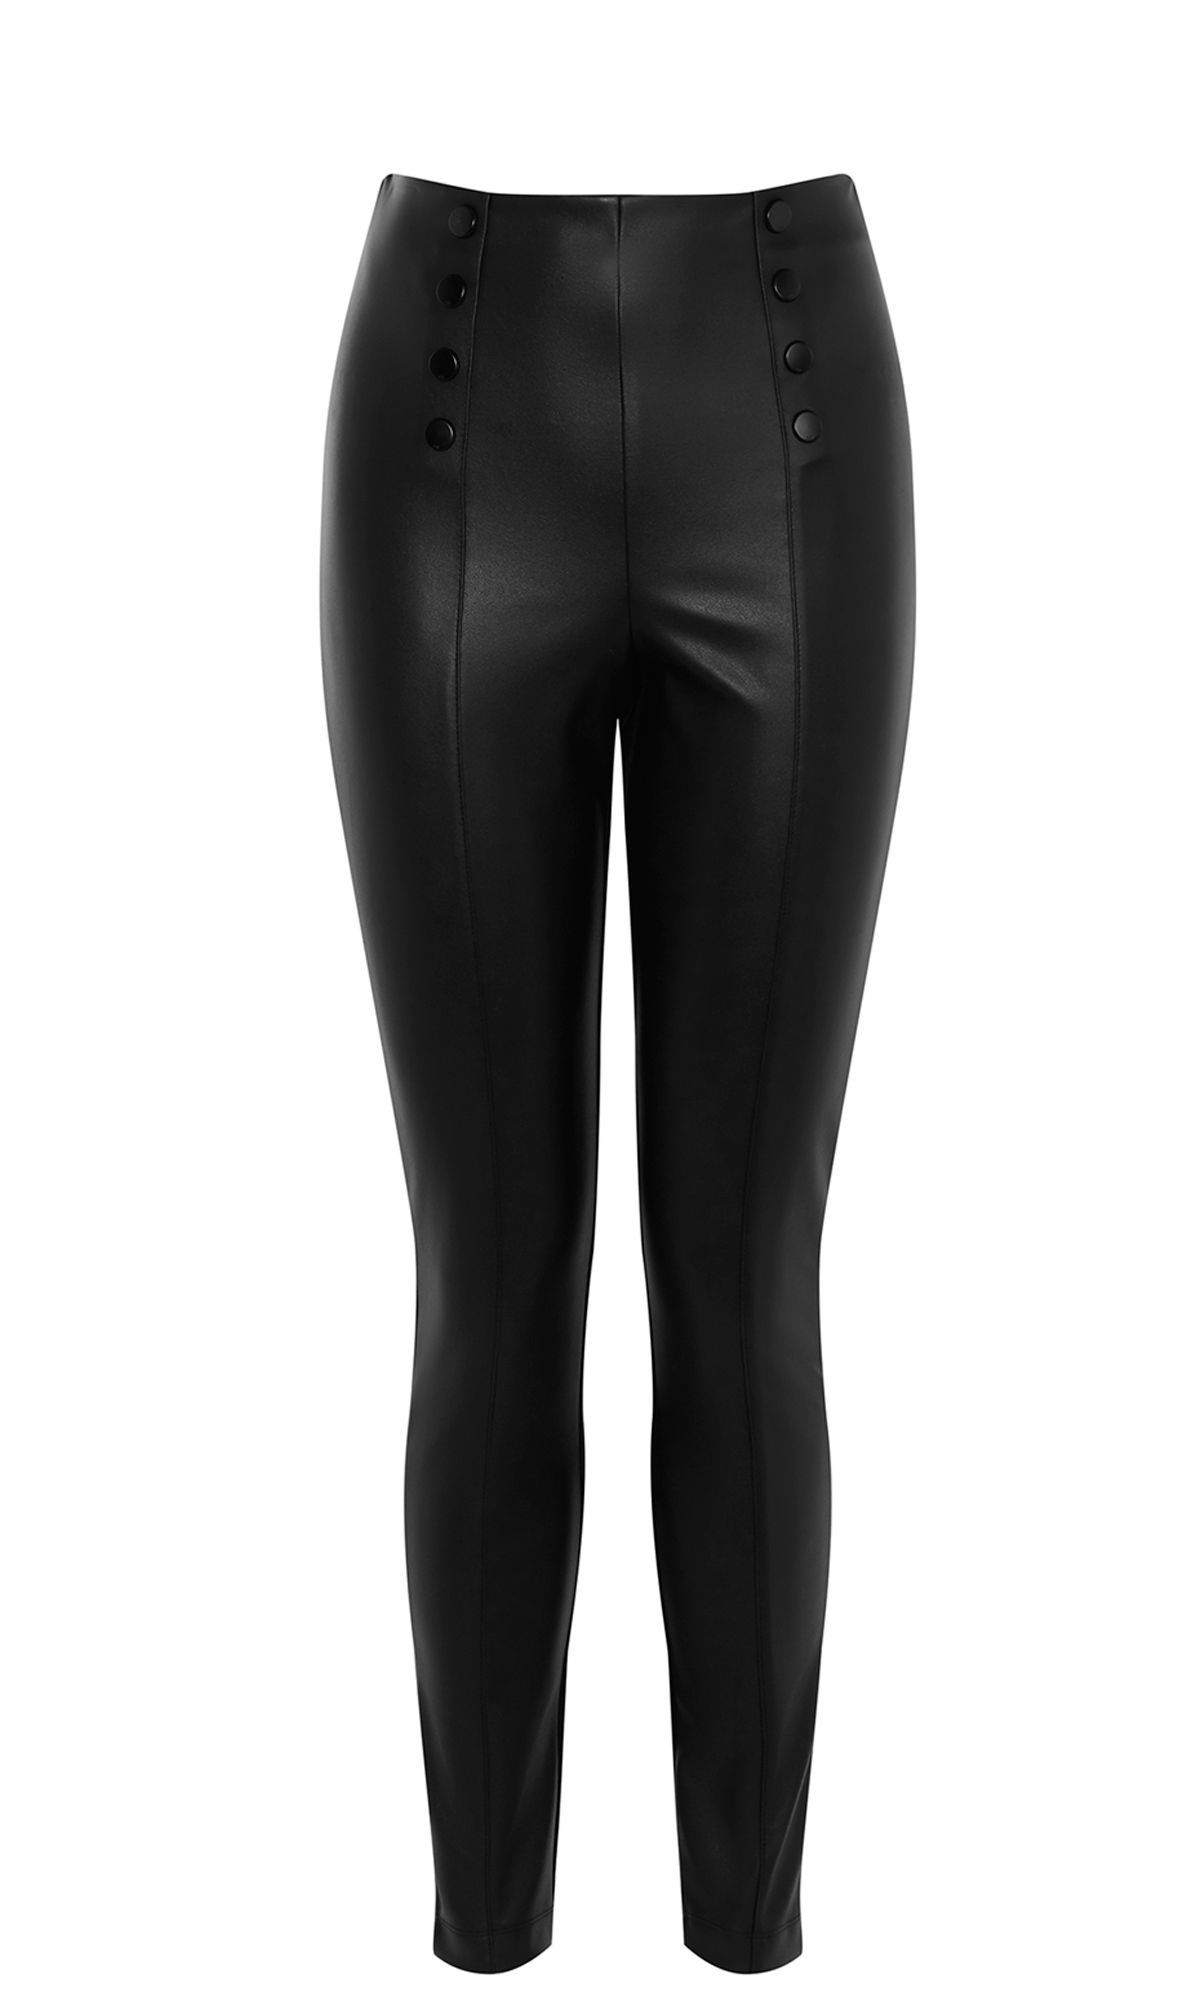 Karen Millen Faux Leather Leggings, Black